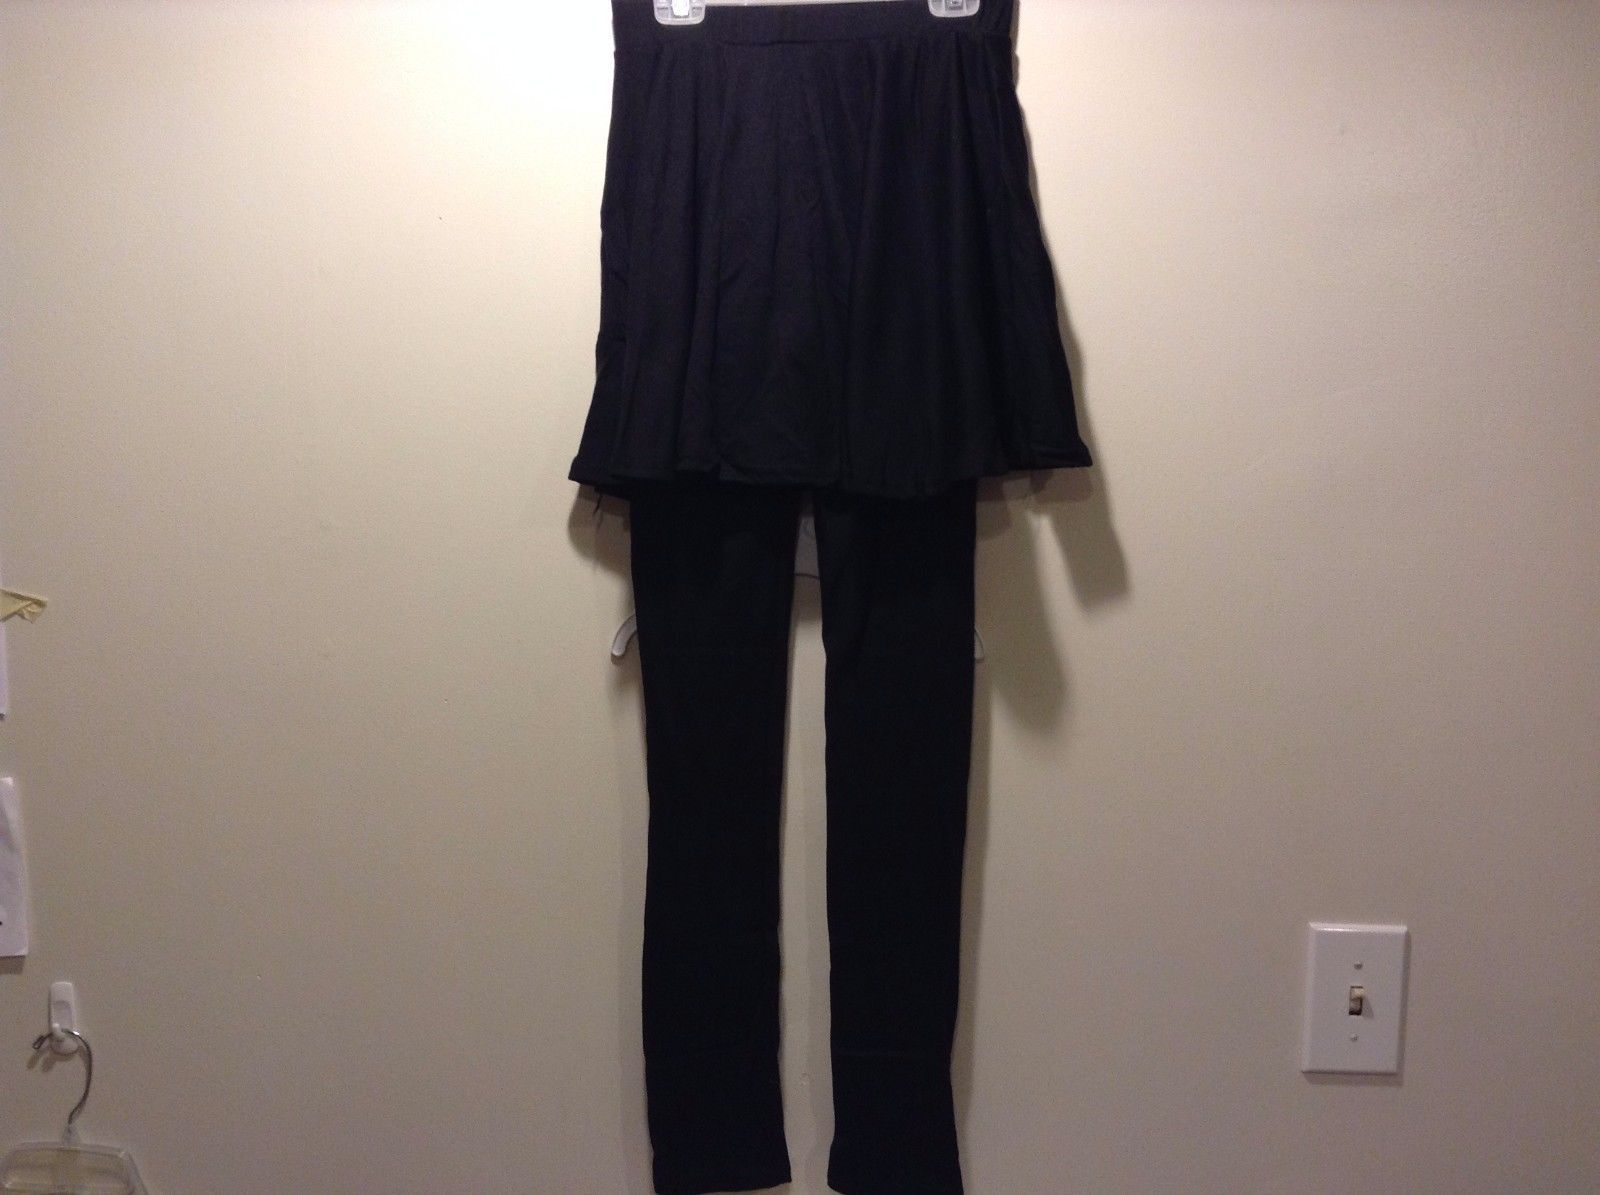 Howard's Flared Skirted Leggings Black One Size Fits Most